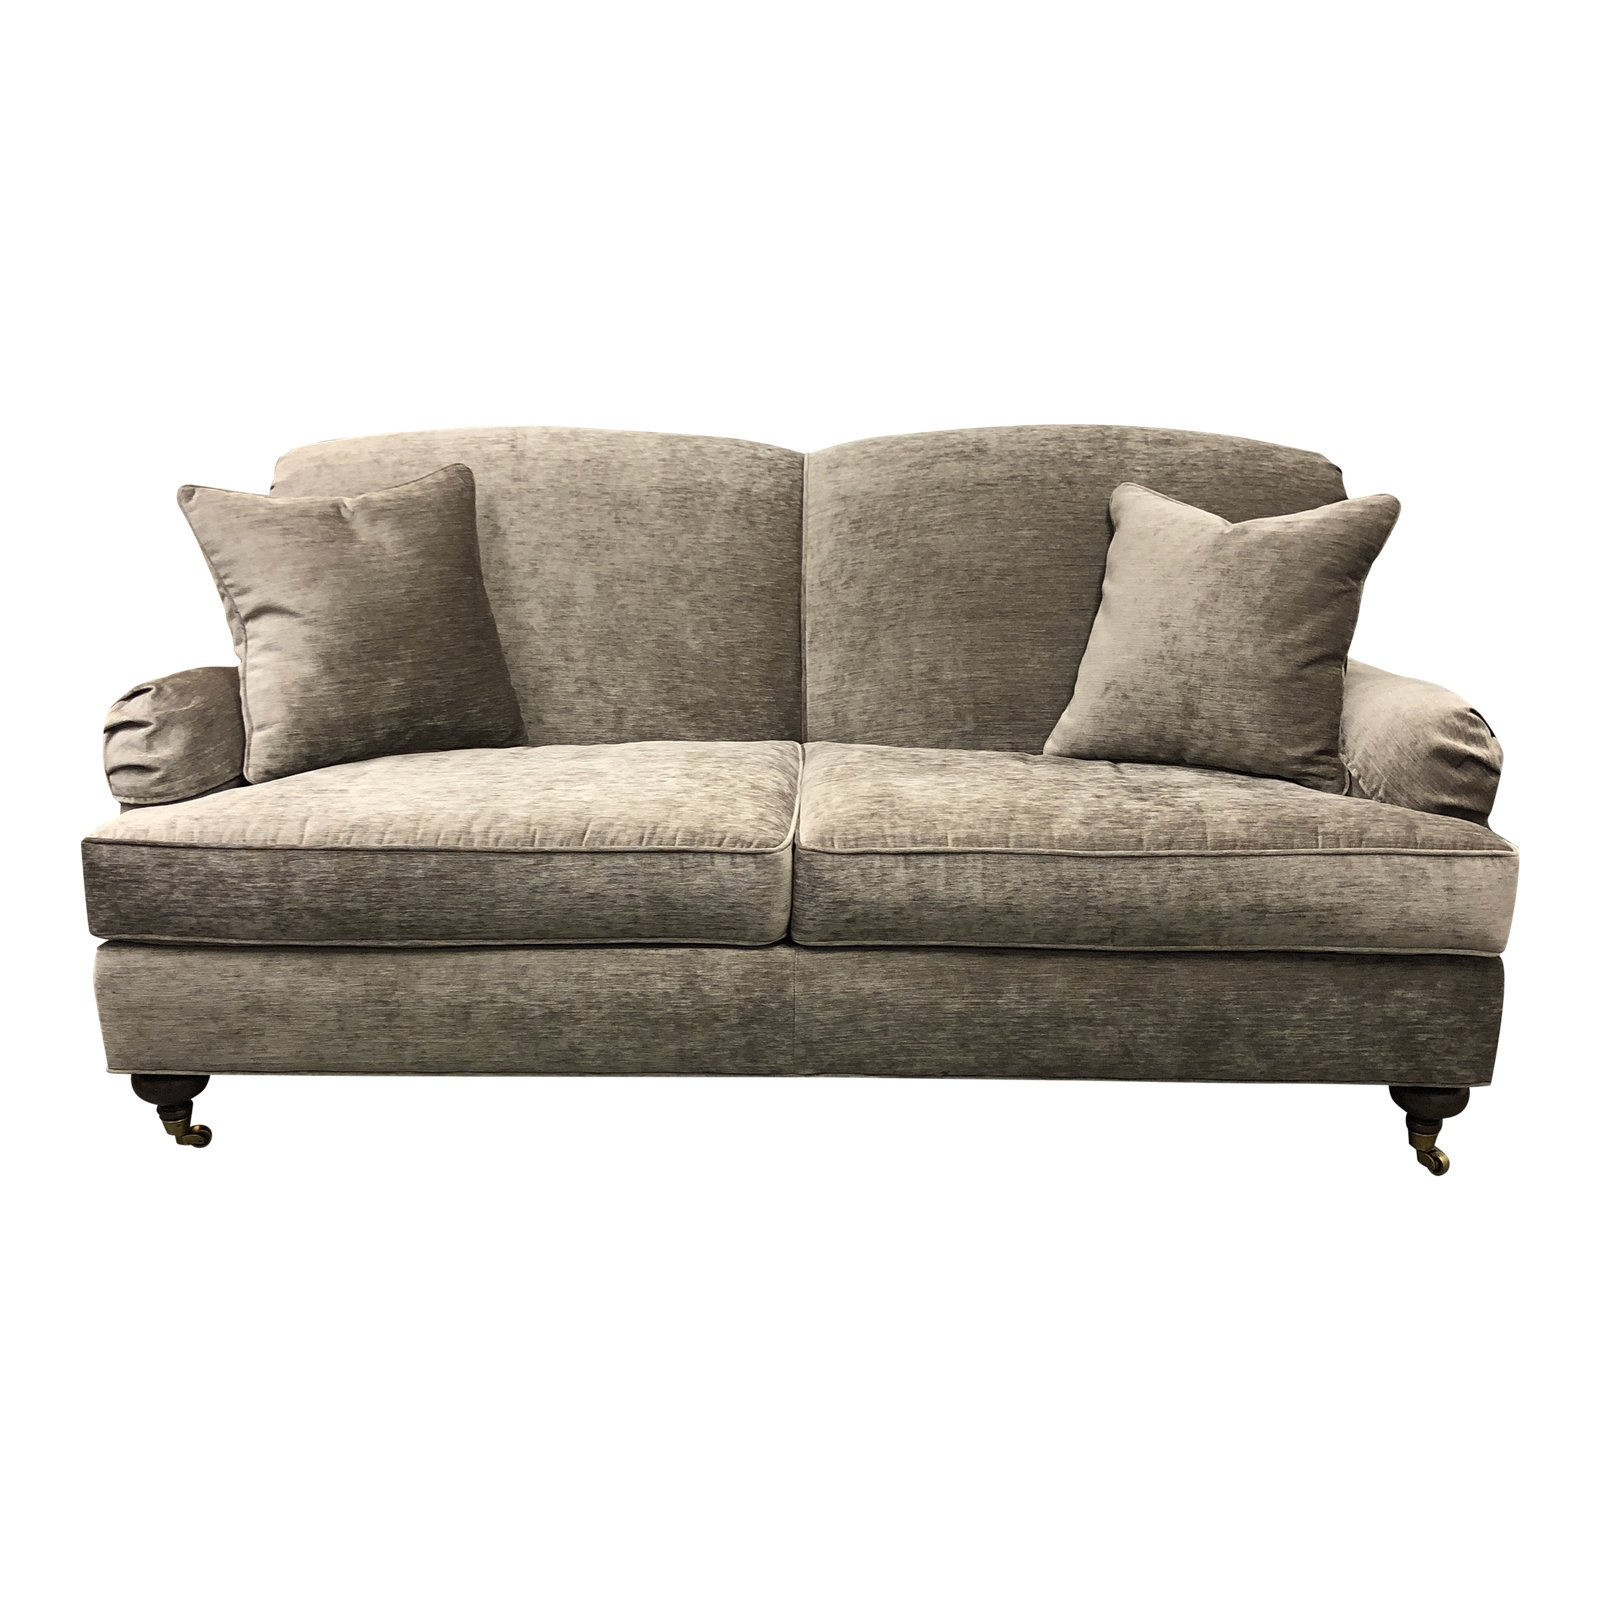 New Ethan Allen Small Oxford Sofa